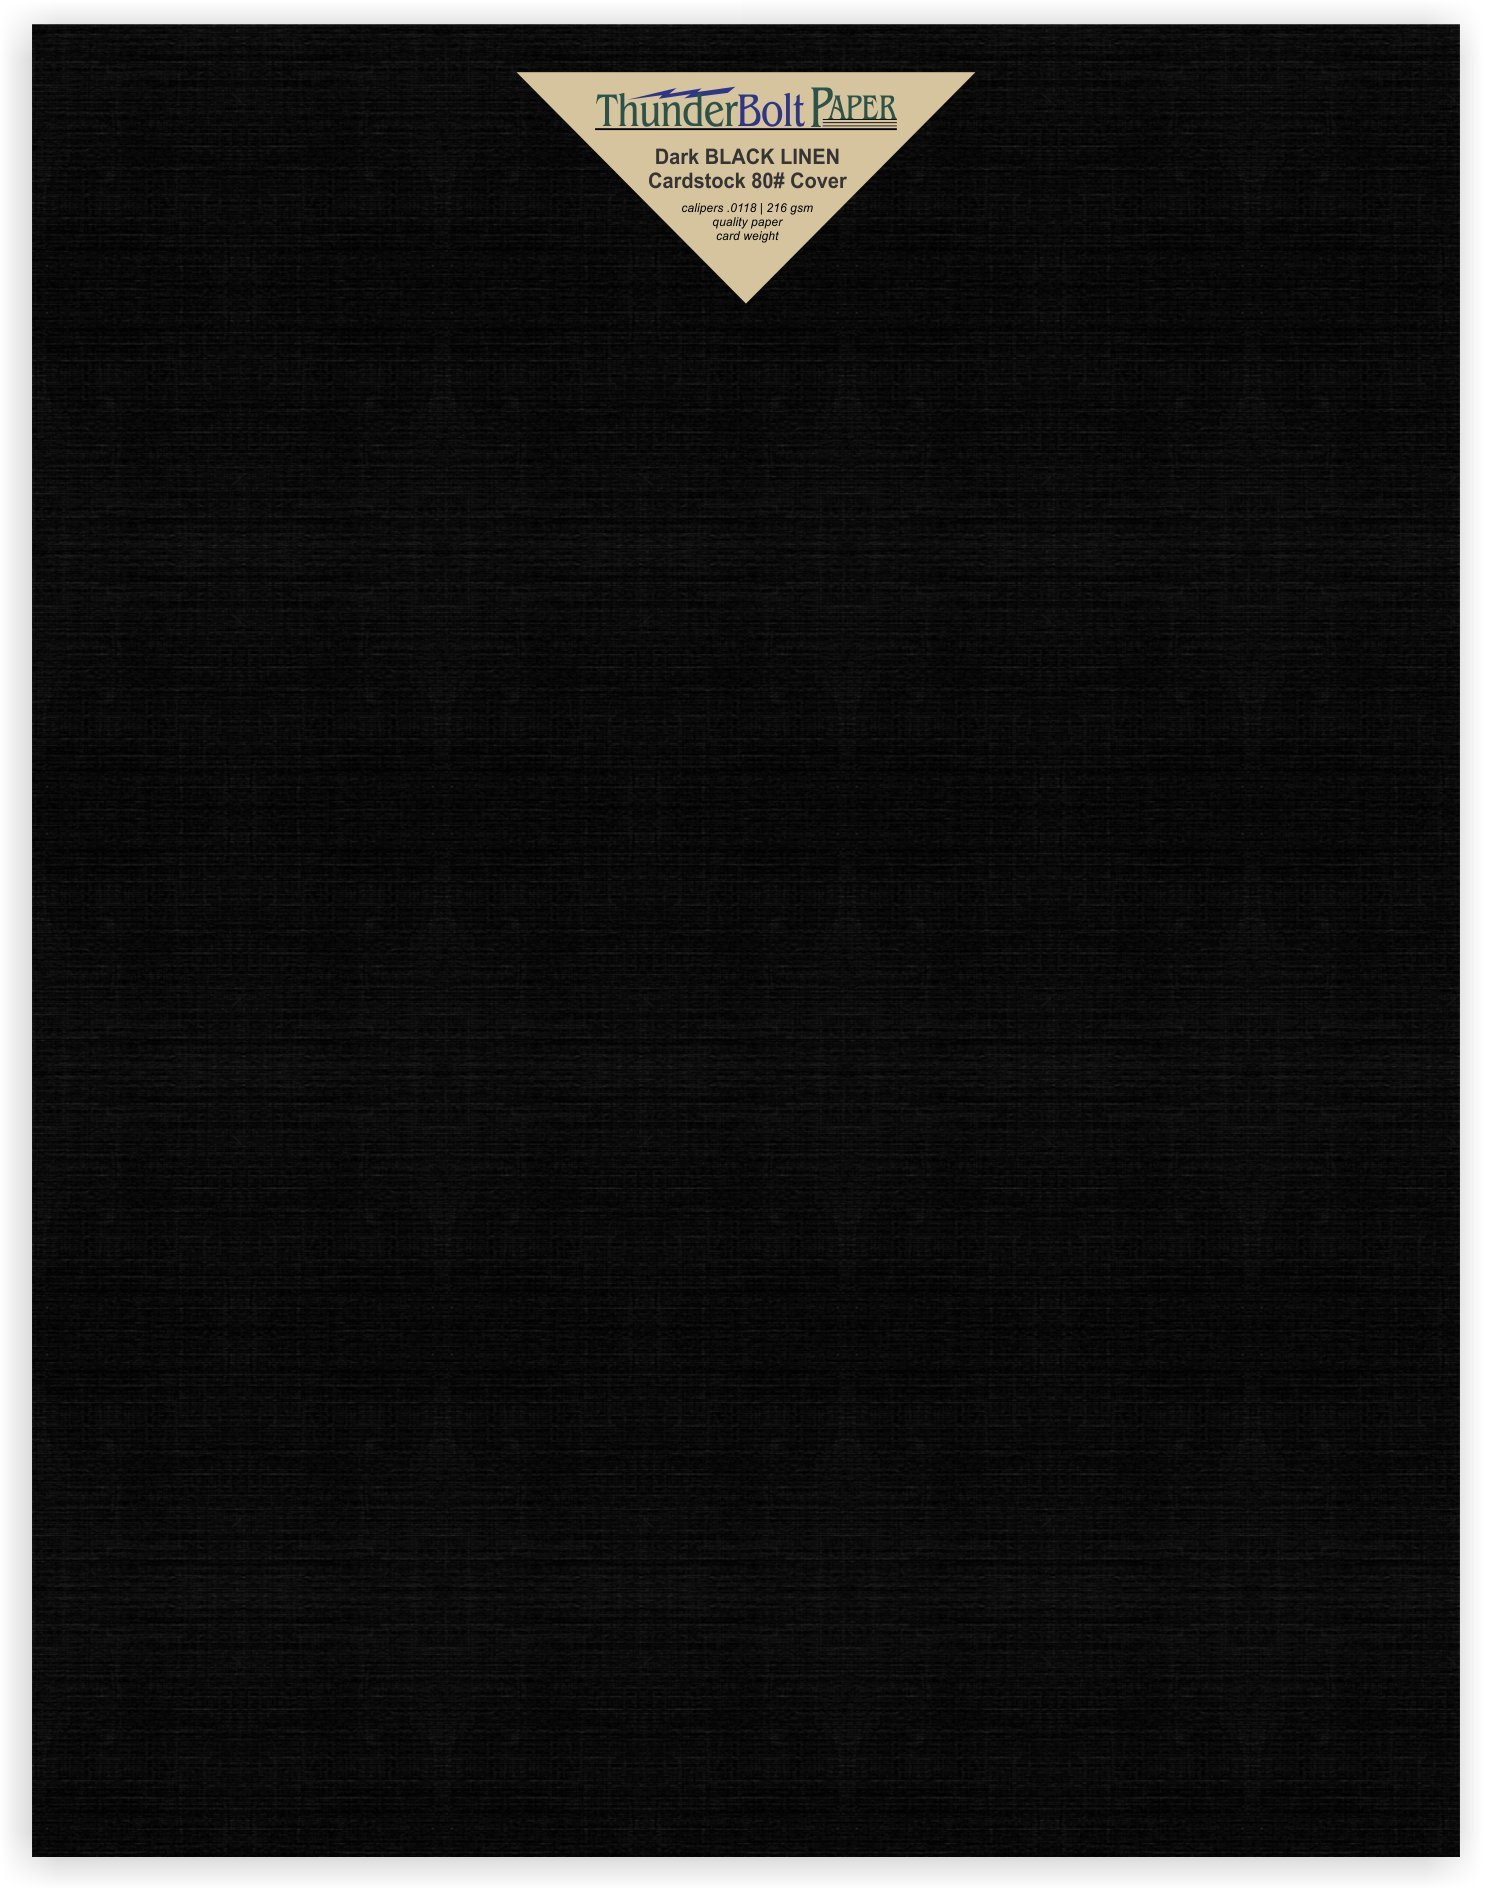 35 Black Linen 80# Cover Paper Sheets - 11'' X 14'' (11X14 Inches) Scrapbook|Picture-Frame Size - Card Weight - Deep Dye, Fine Linen Textured Finish - Quality Cardstock